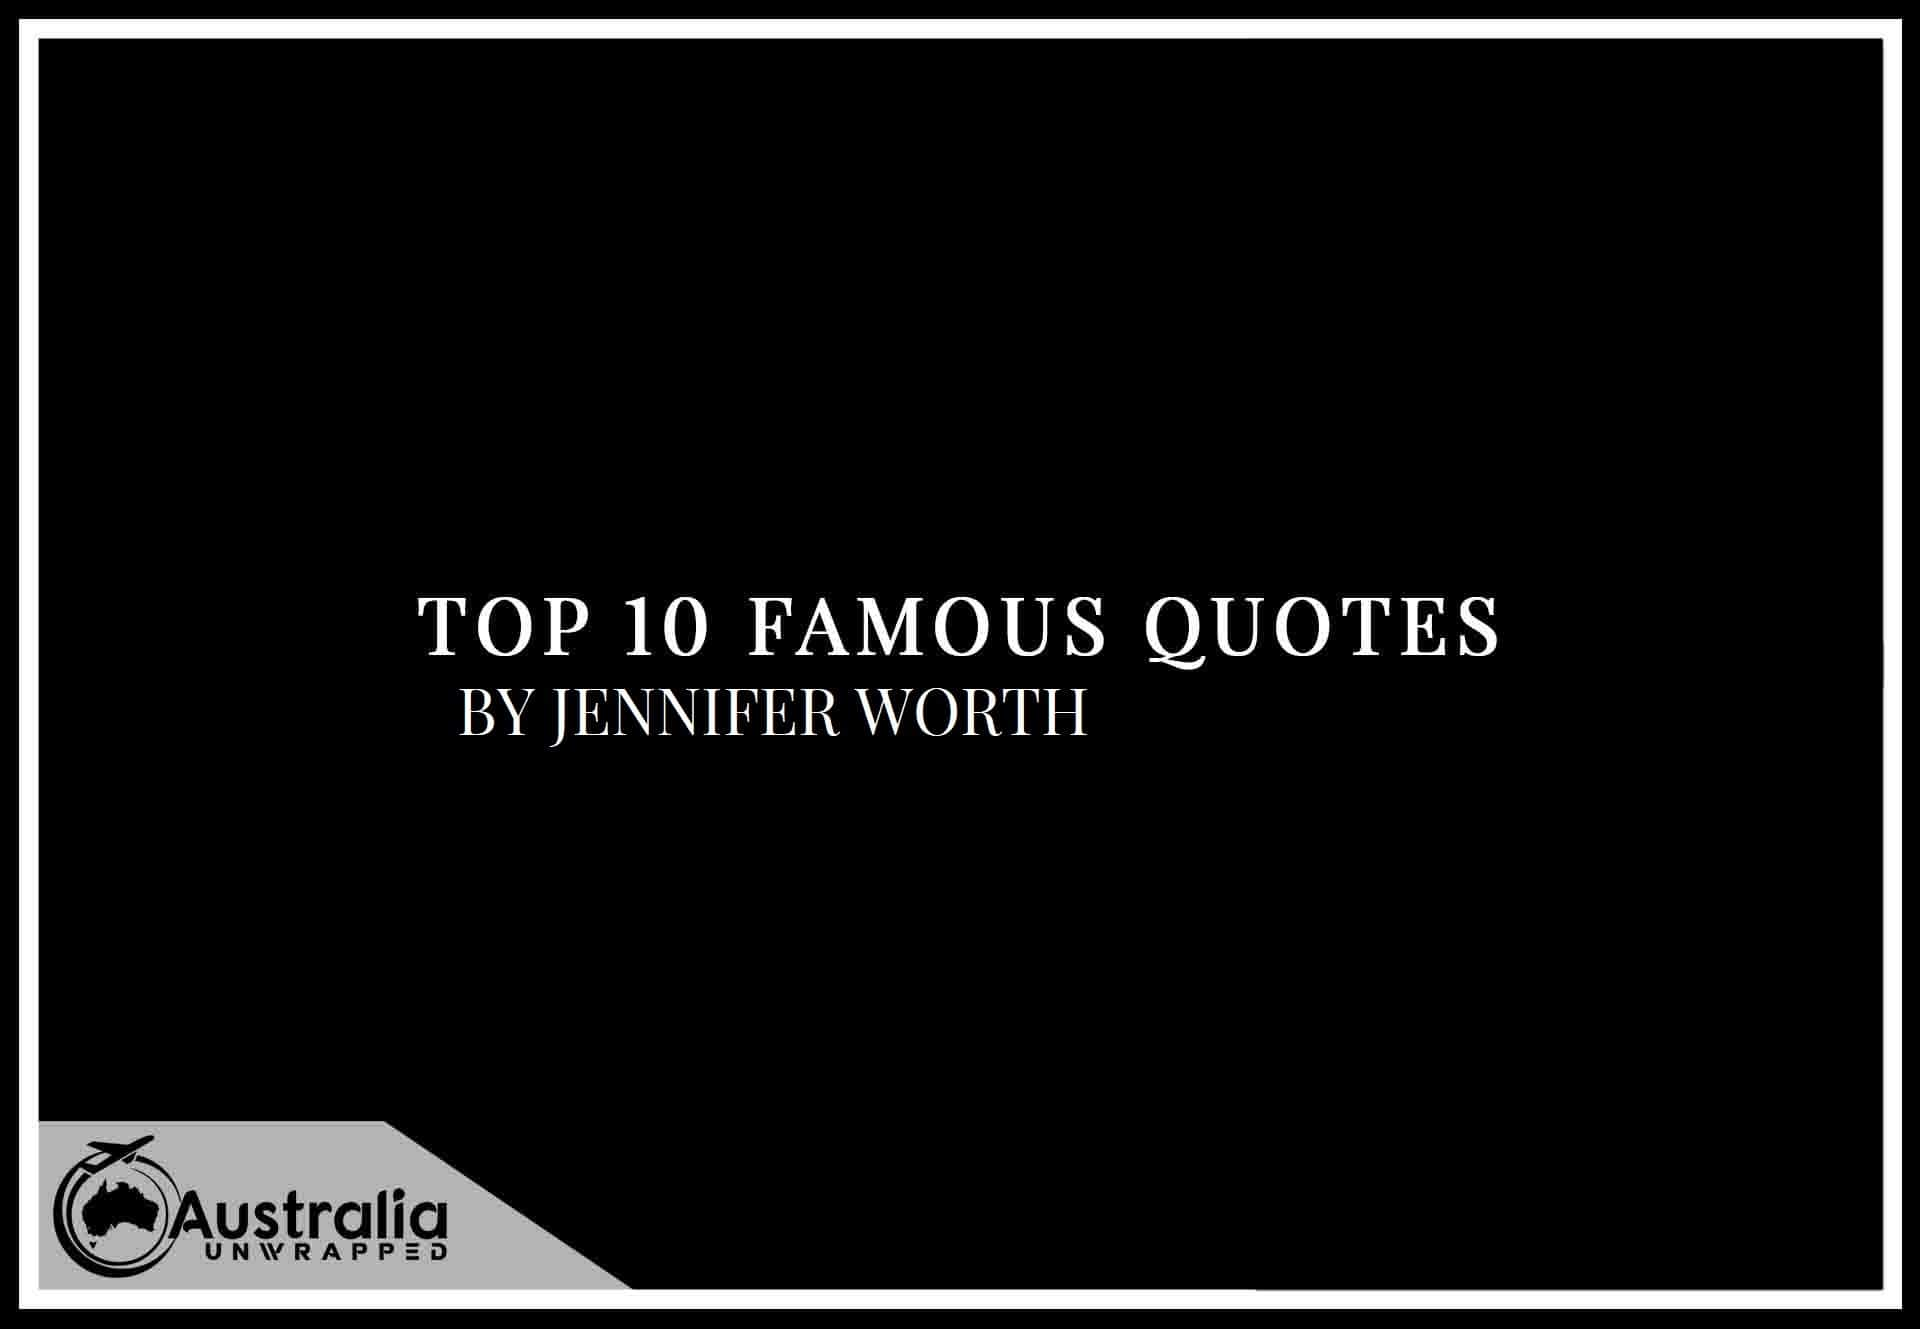 Top 10 Famous Quotes by Author Jennifer Worth